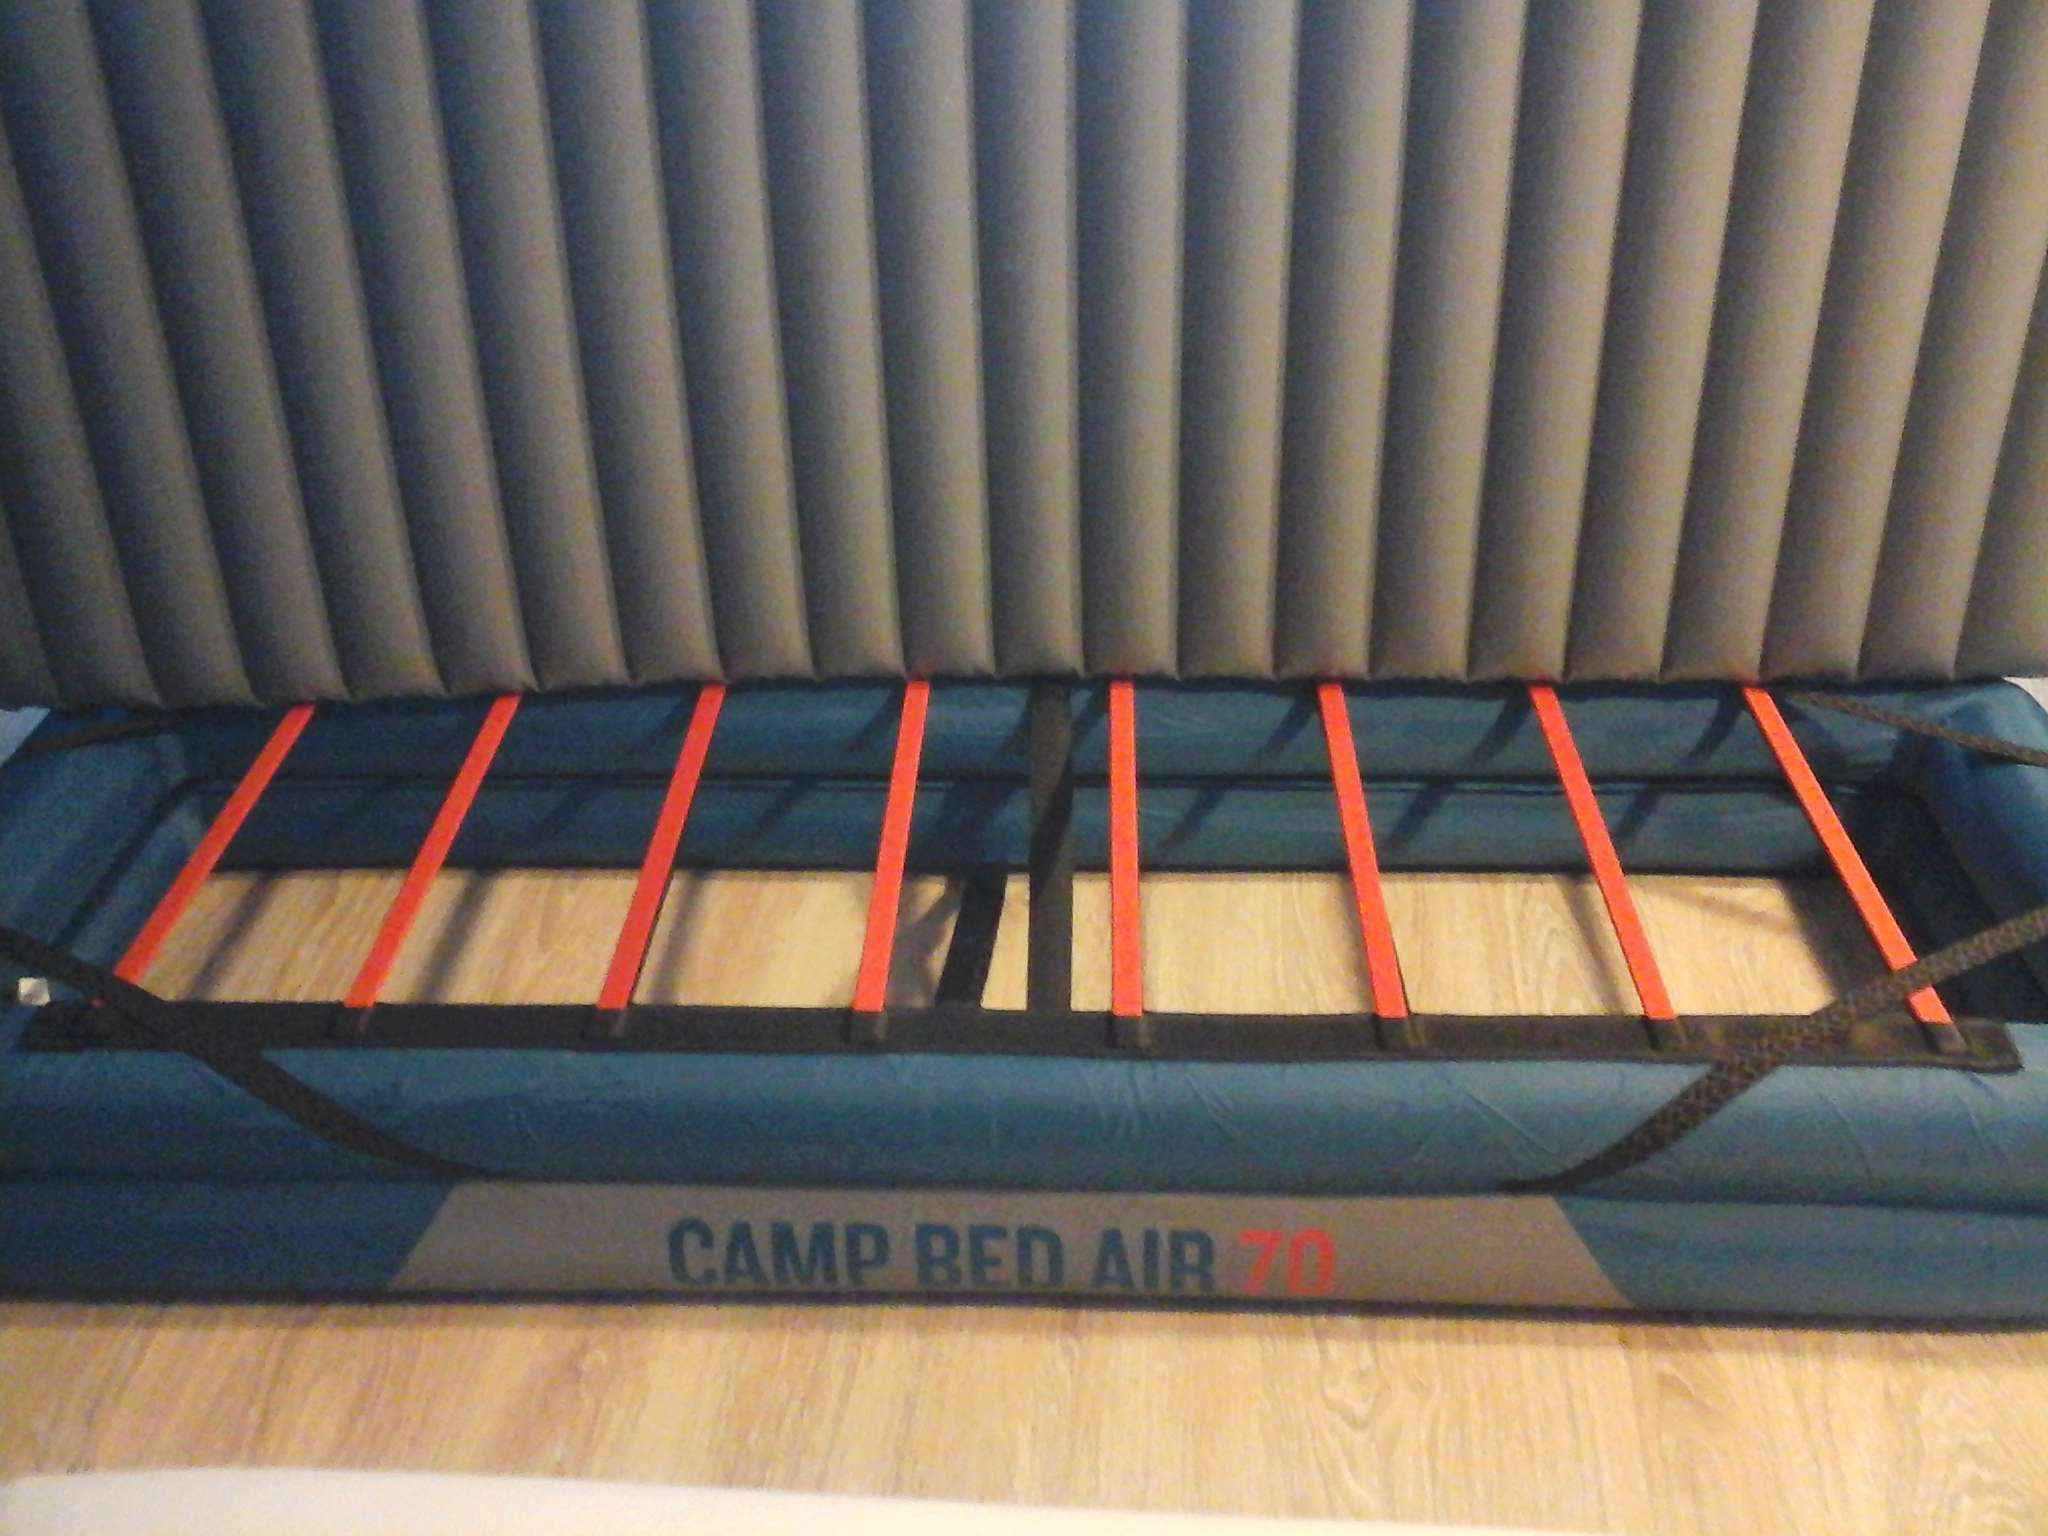 lit de camp gonflable camp bed air 70 20170912